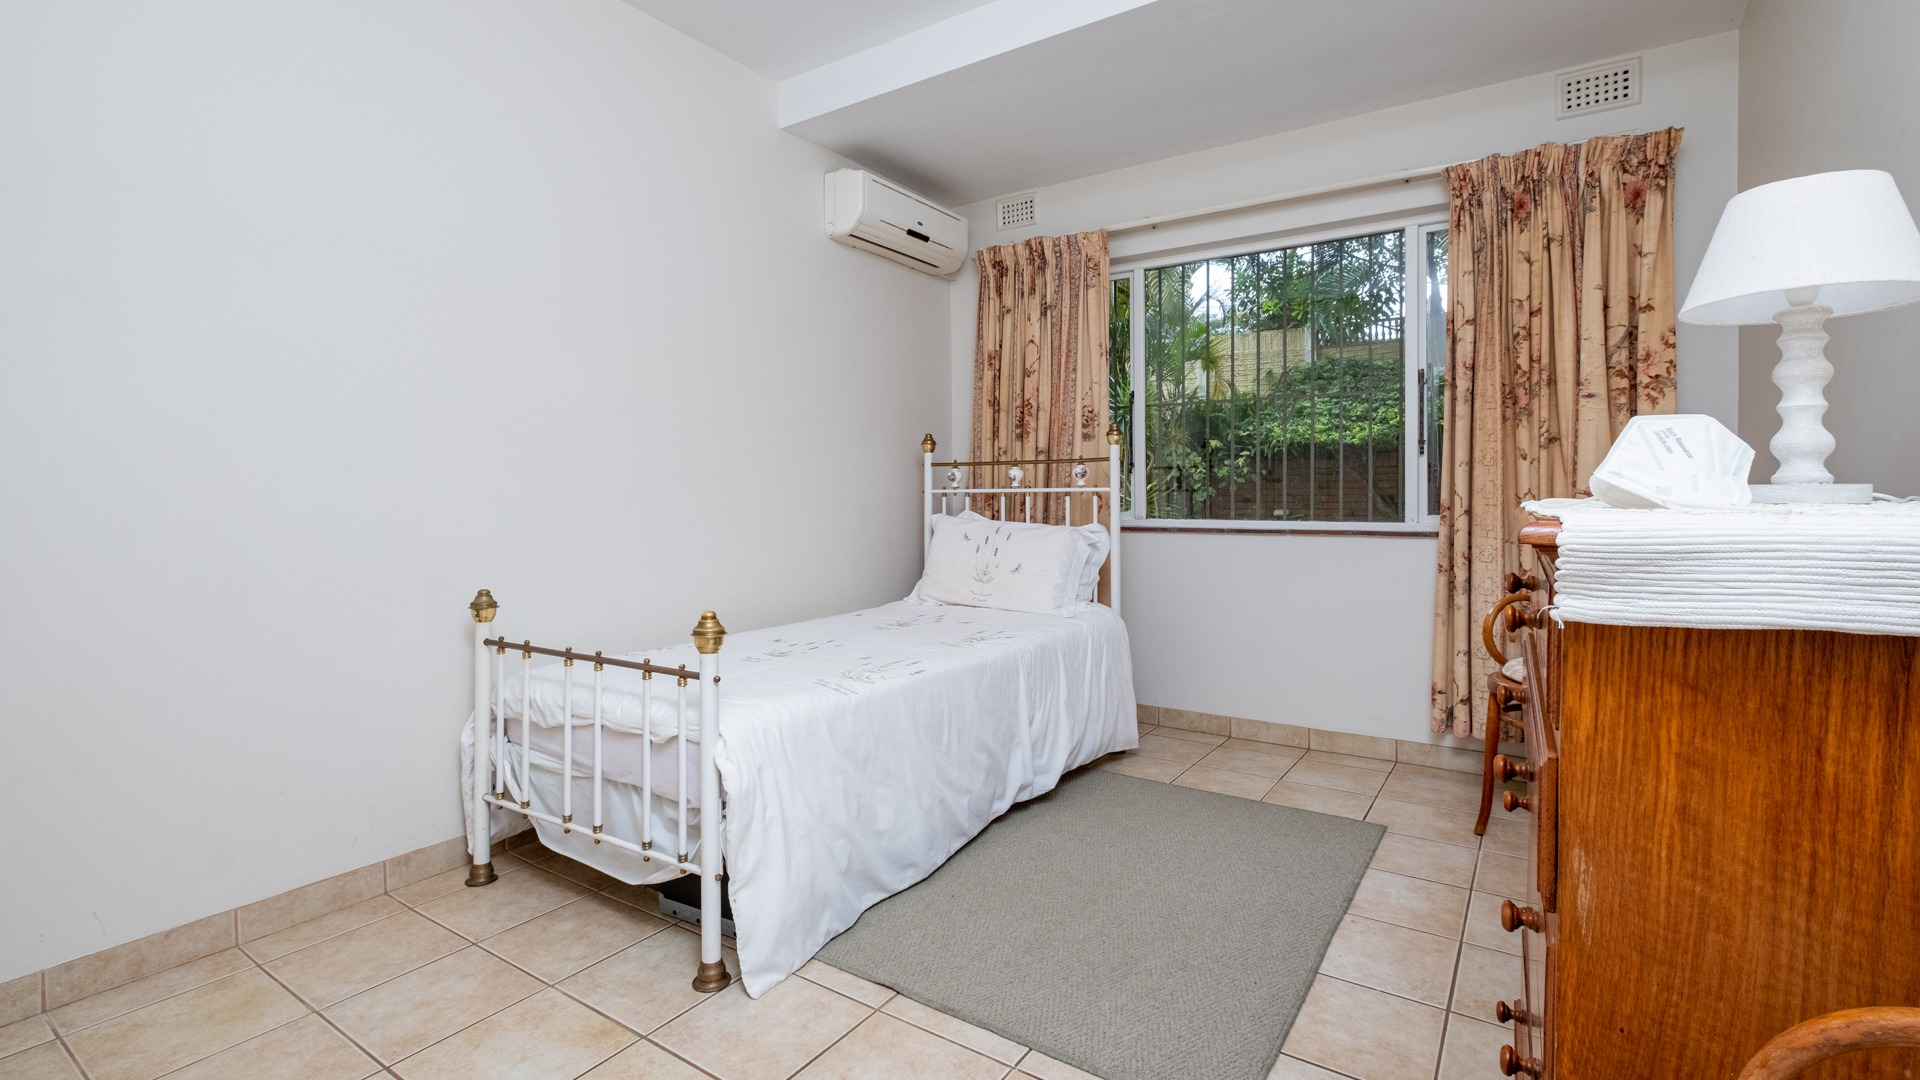 3 Bedroom Townhouse For Sale in La Lucia